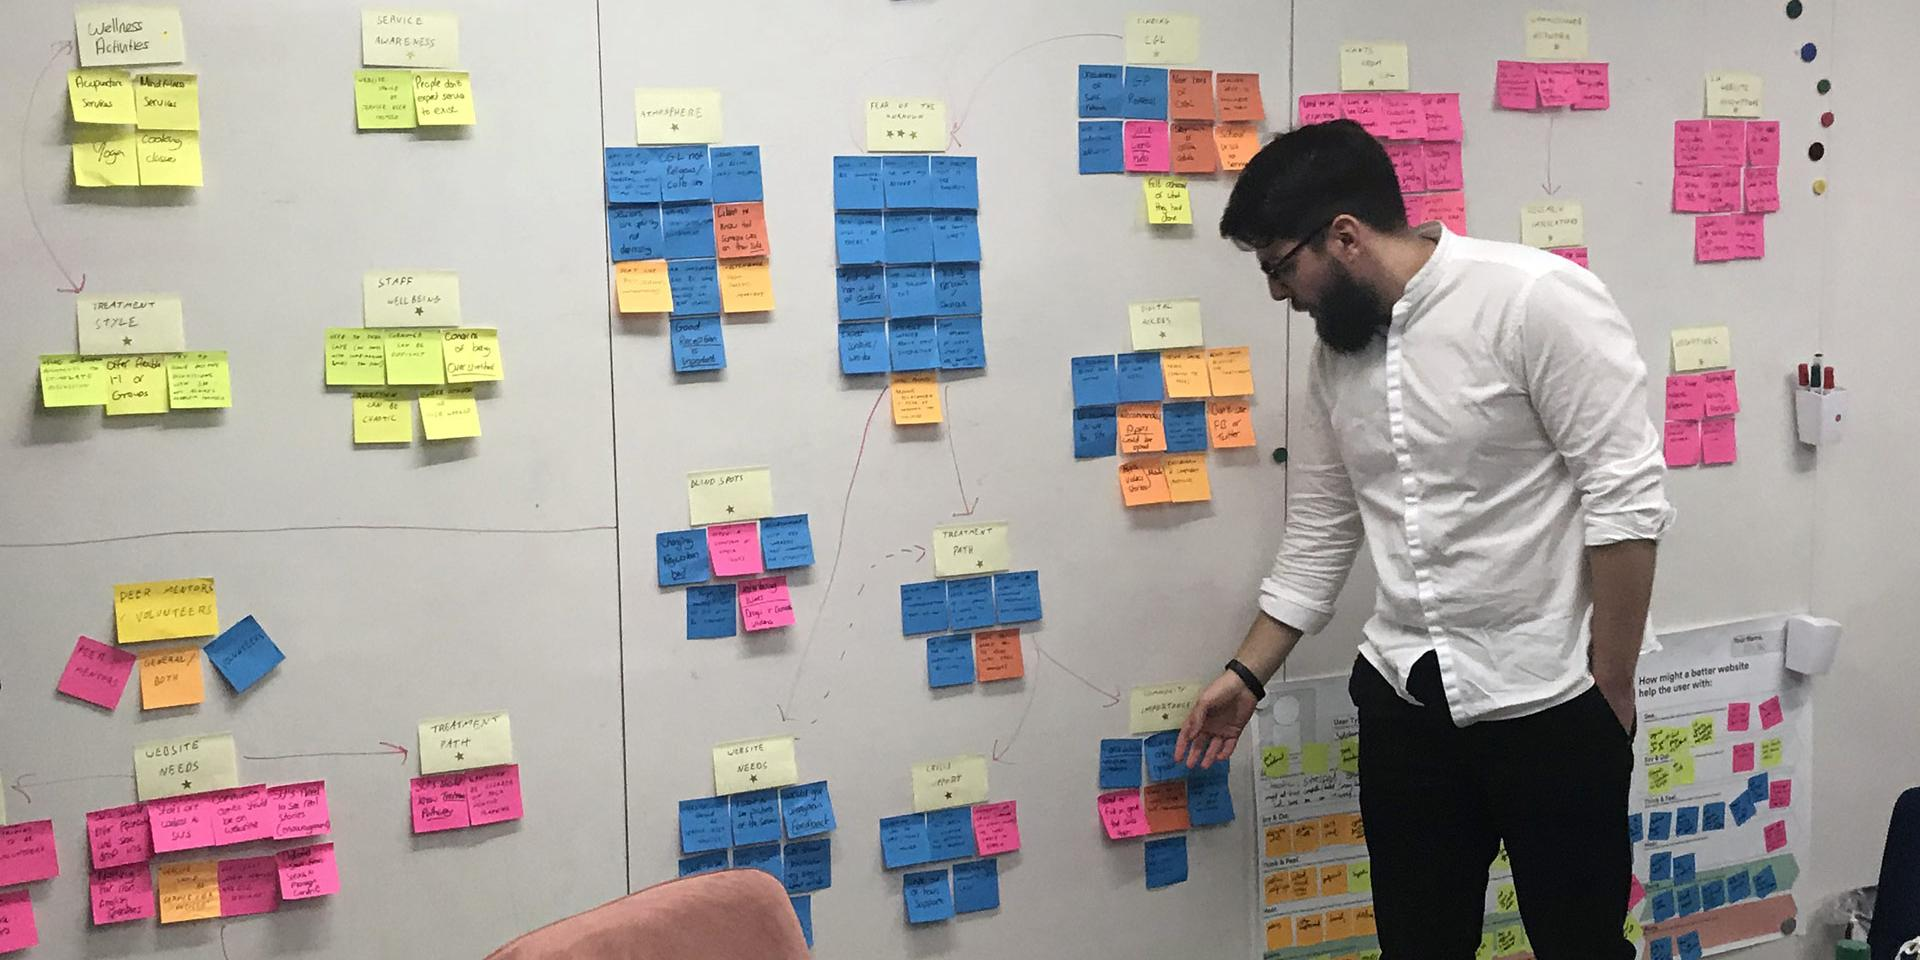 a man standing pointing at some post-it notes on a wall